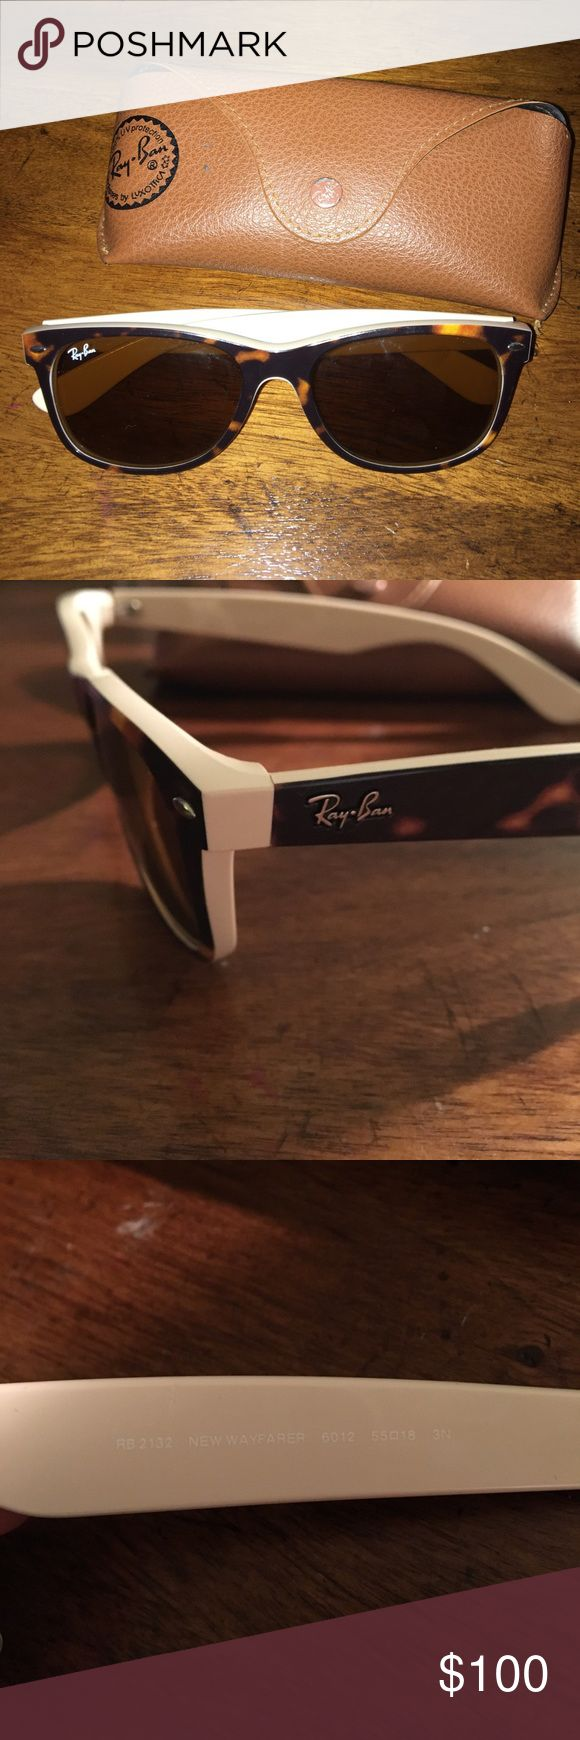 Authentic ray-ban waferers with case These are classic ray-ban wayfarers that have barely been touched. Authenticity packet and the cleaner are still in the packet untouched. Size is 55[]18. Price is negotiable! Ray-Ban Accessories Sunglasses